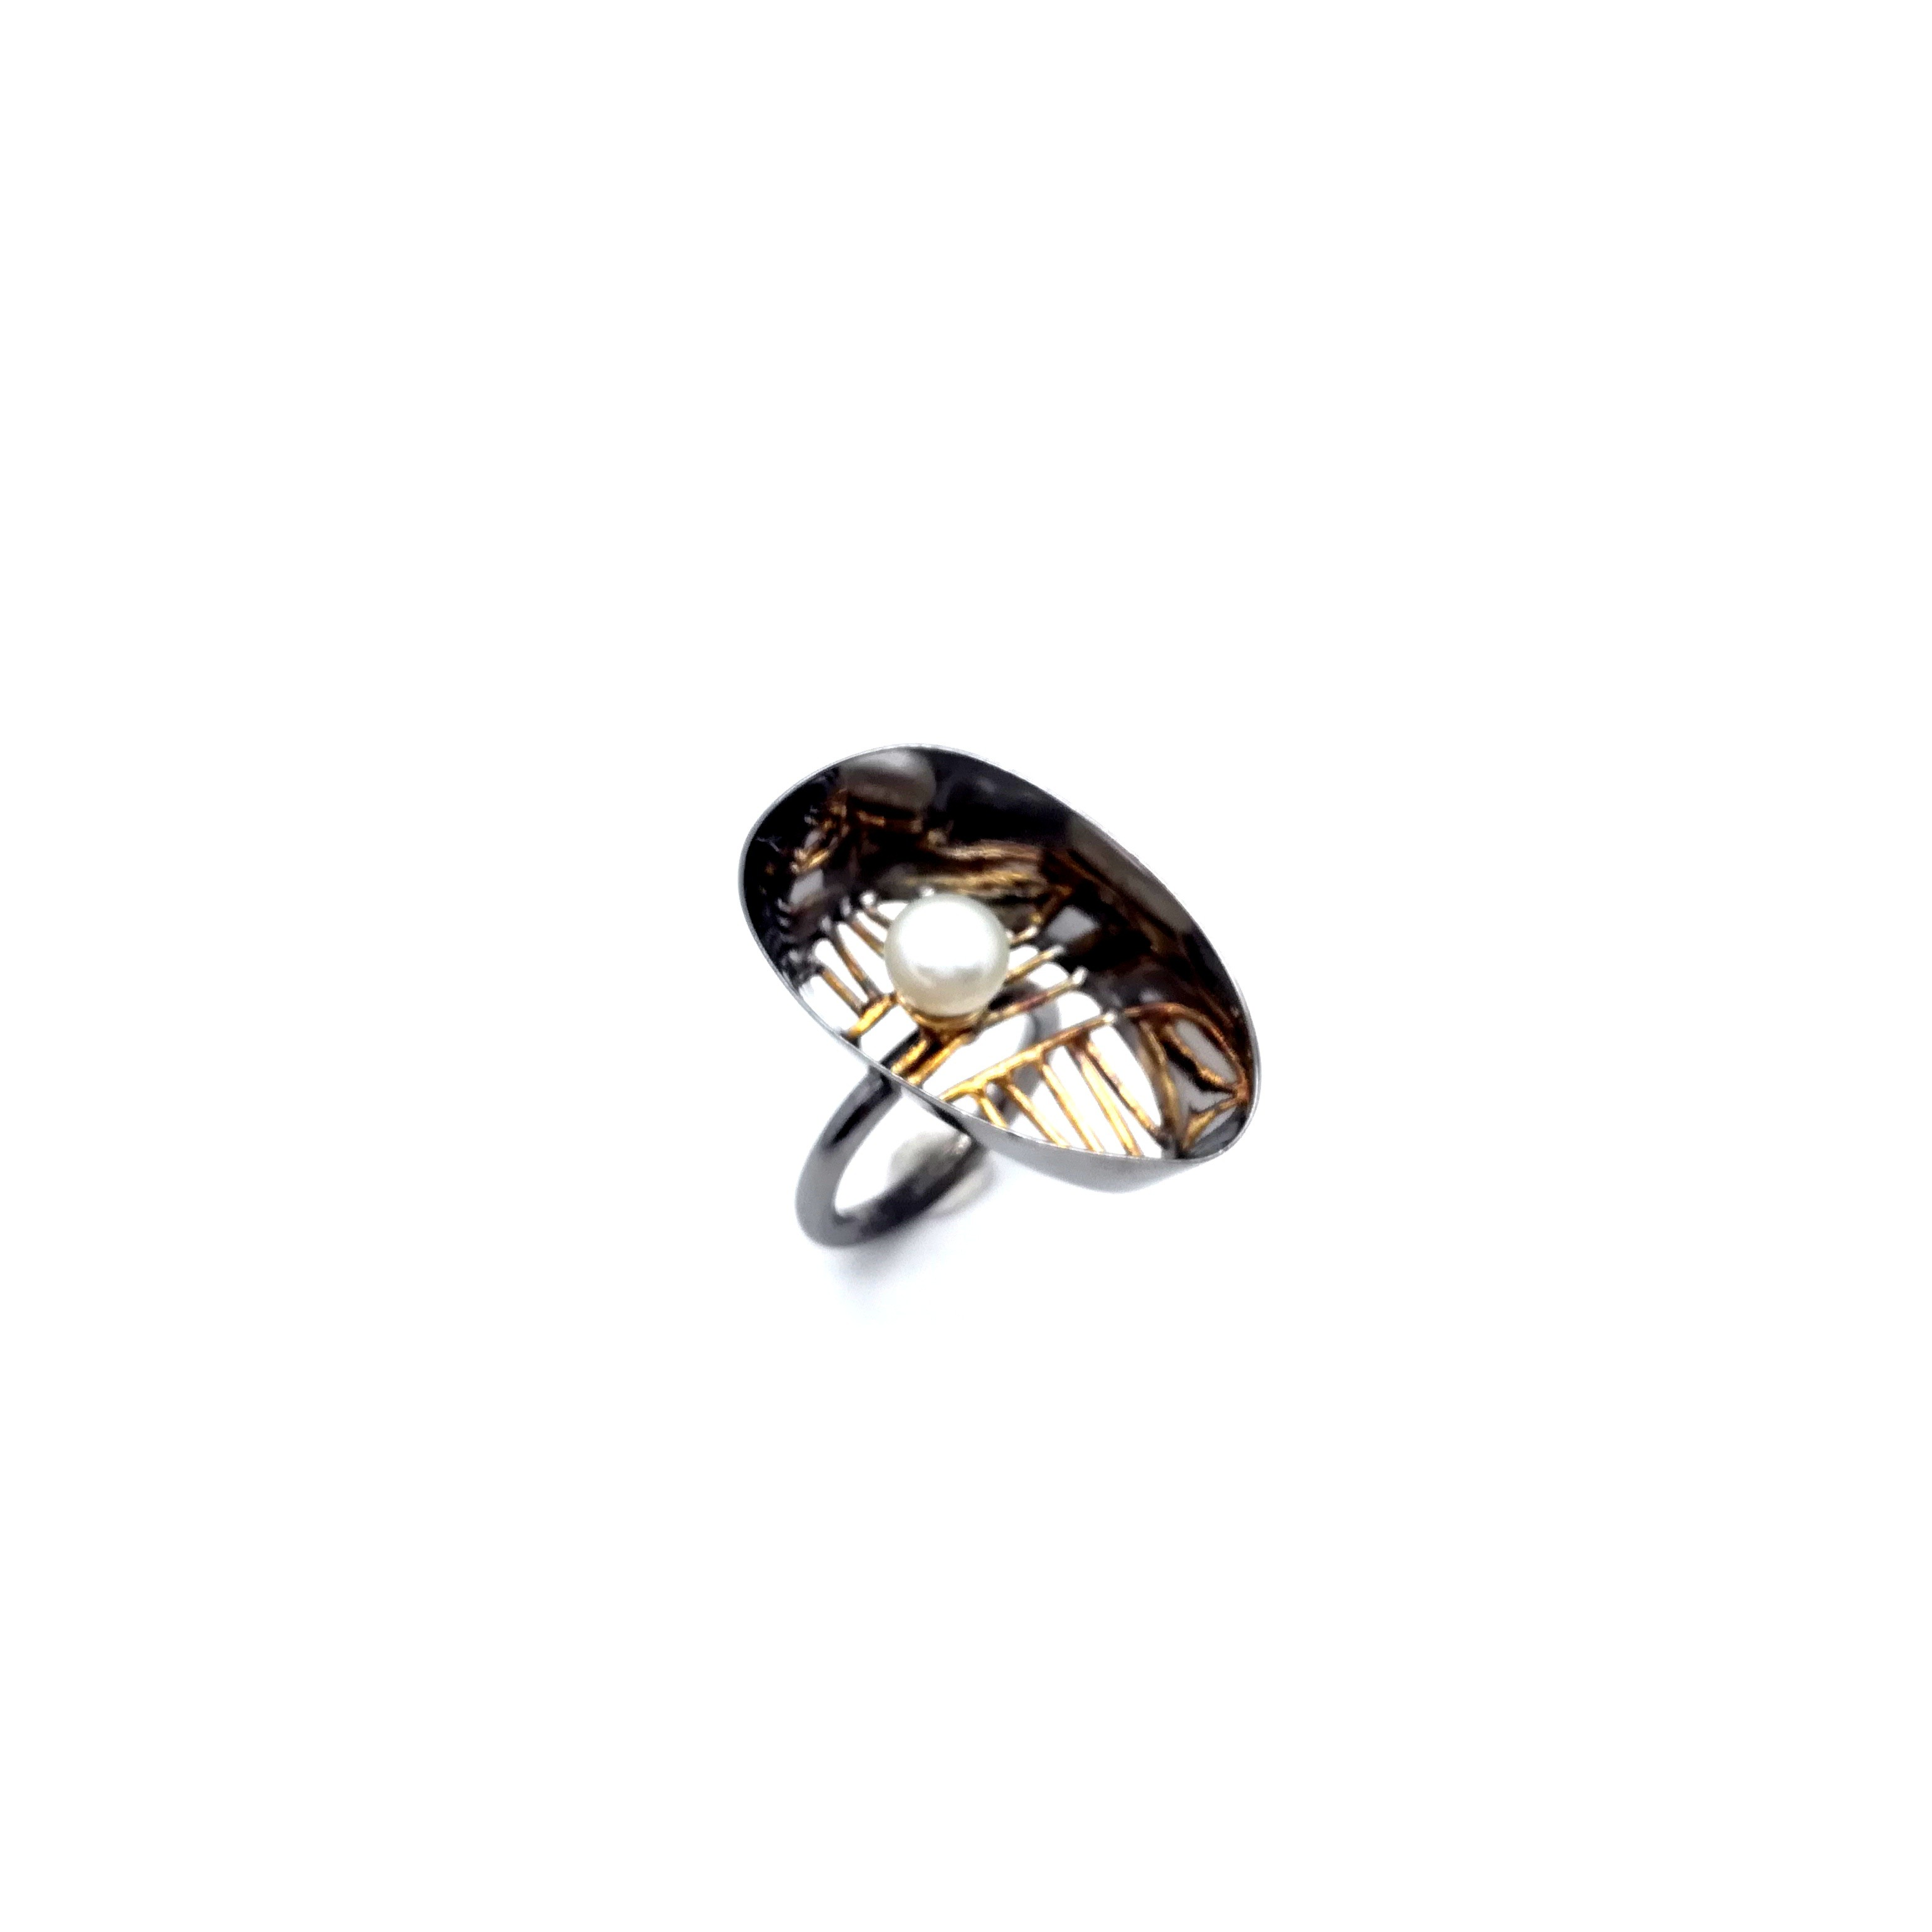 Silver ring 925 black rhodium and gold plated with pearl